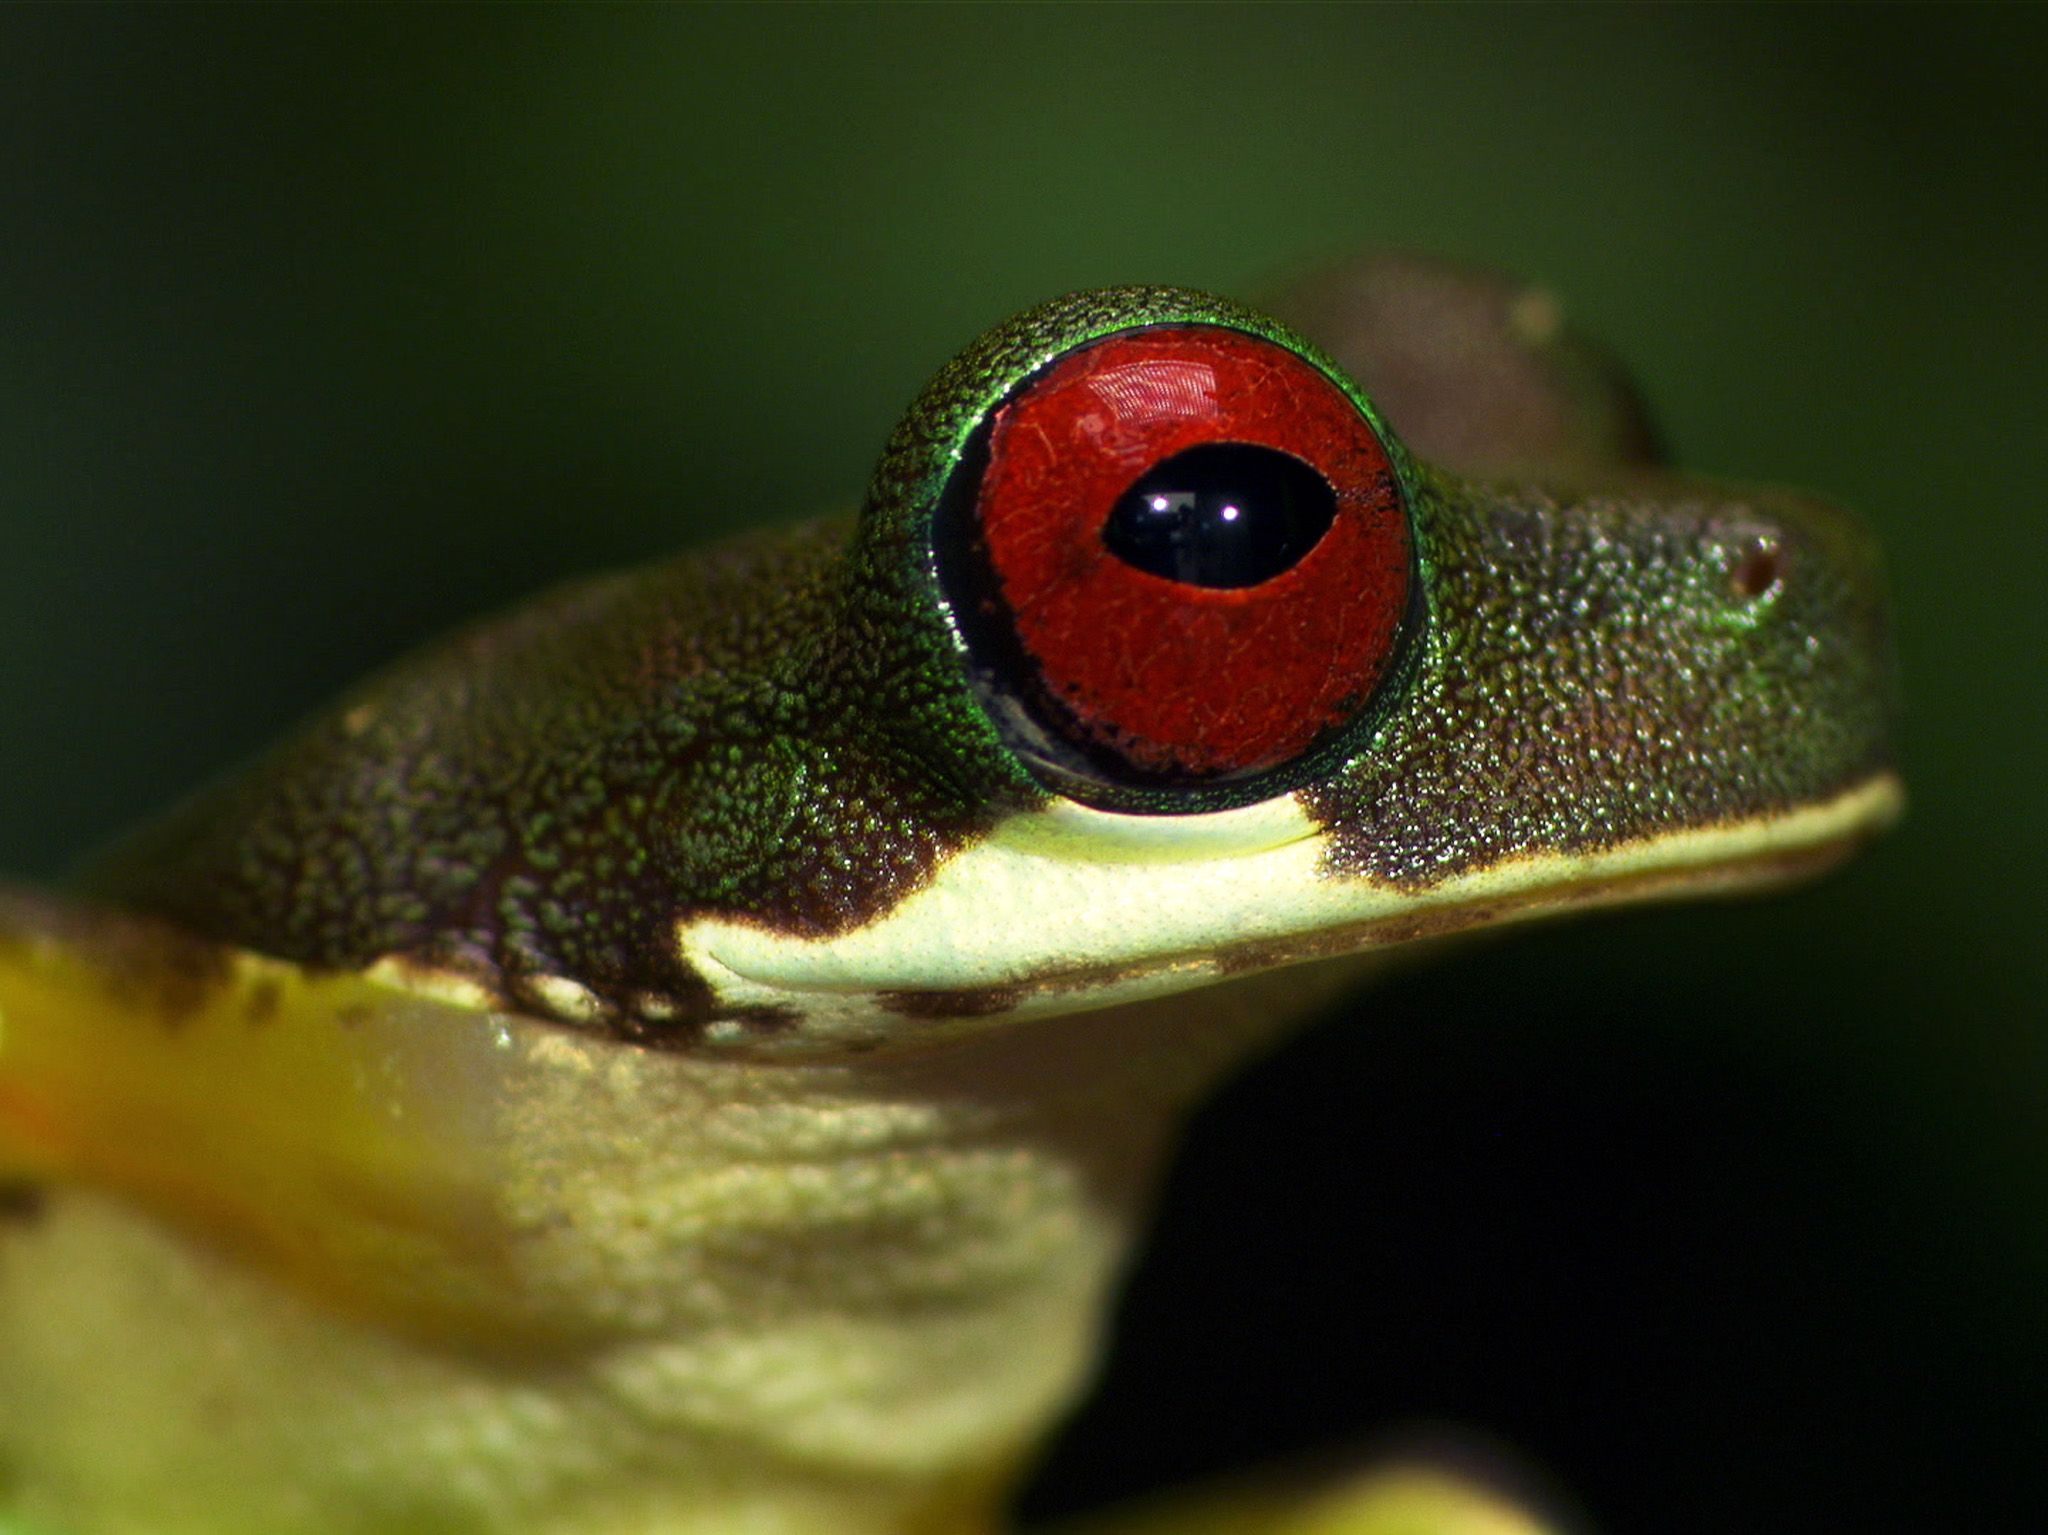 Costa Rica: A Red-eyed stream frog face. This image is from Wonderfully Weird. [Photo of the day - October 2017]